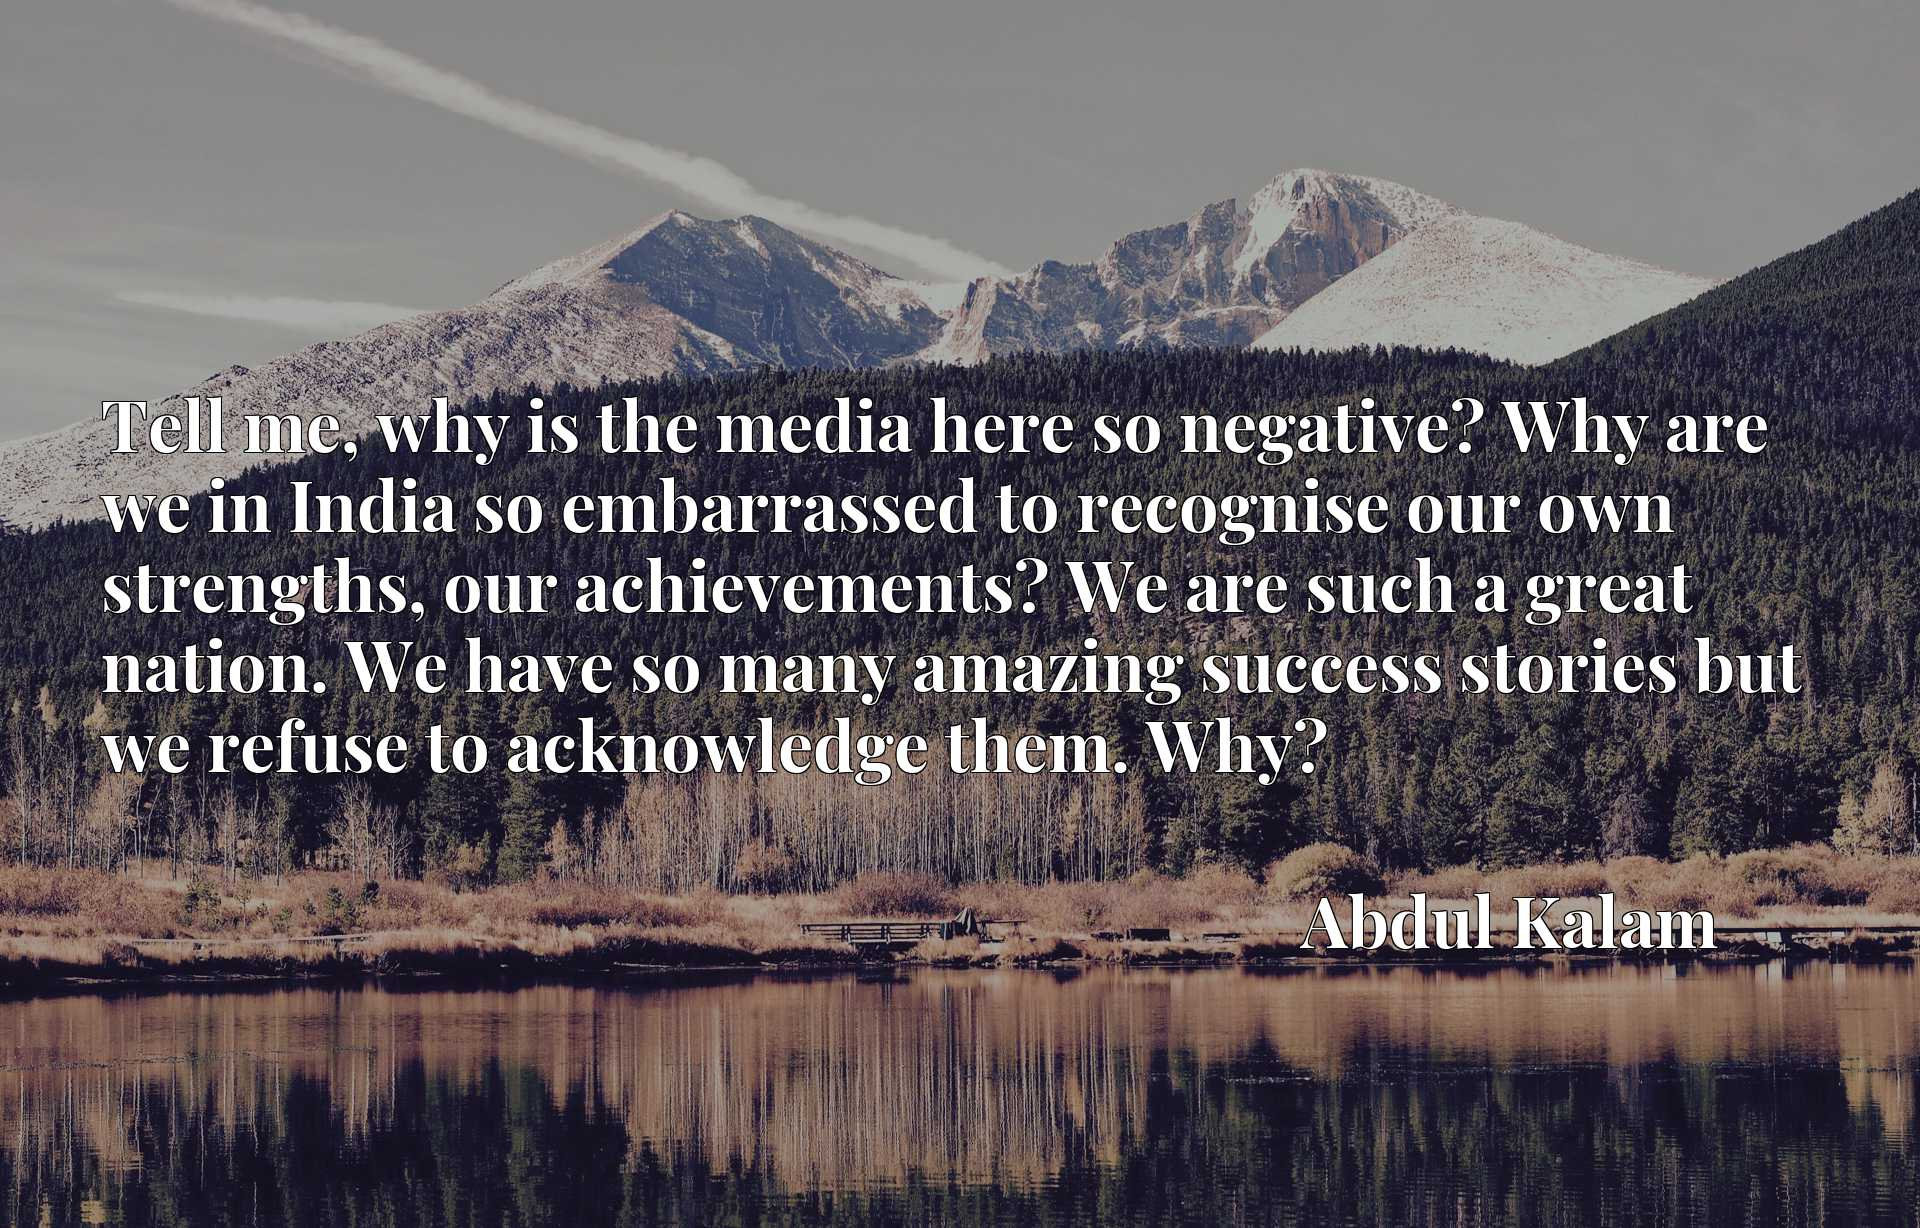 Tell me, why is the media here so negative? Why are we in India so embarrassed to recognise our own strengths, our achievements? We are such a great nation. We have so many amazing success stories but we refuse to acknowledge them. Why?